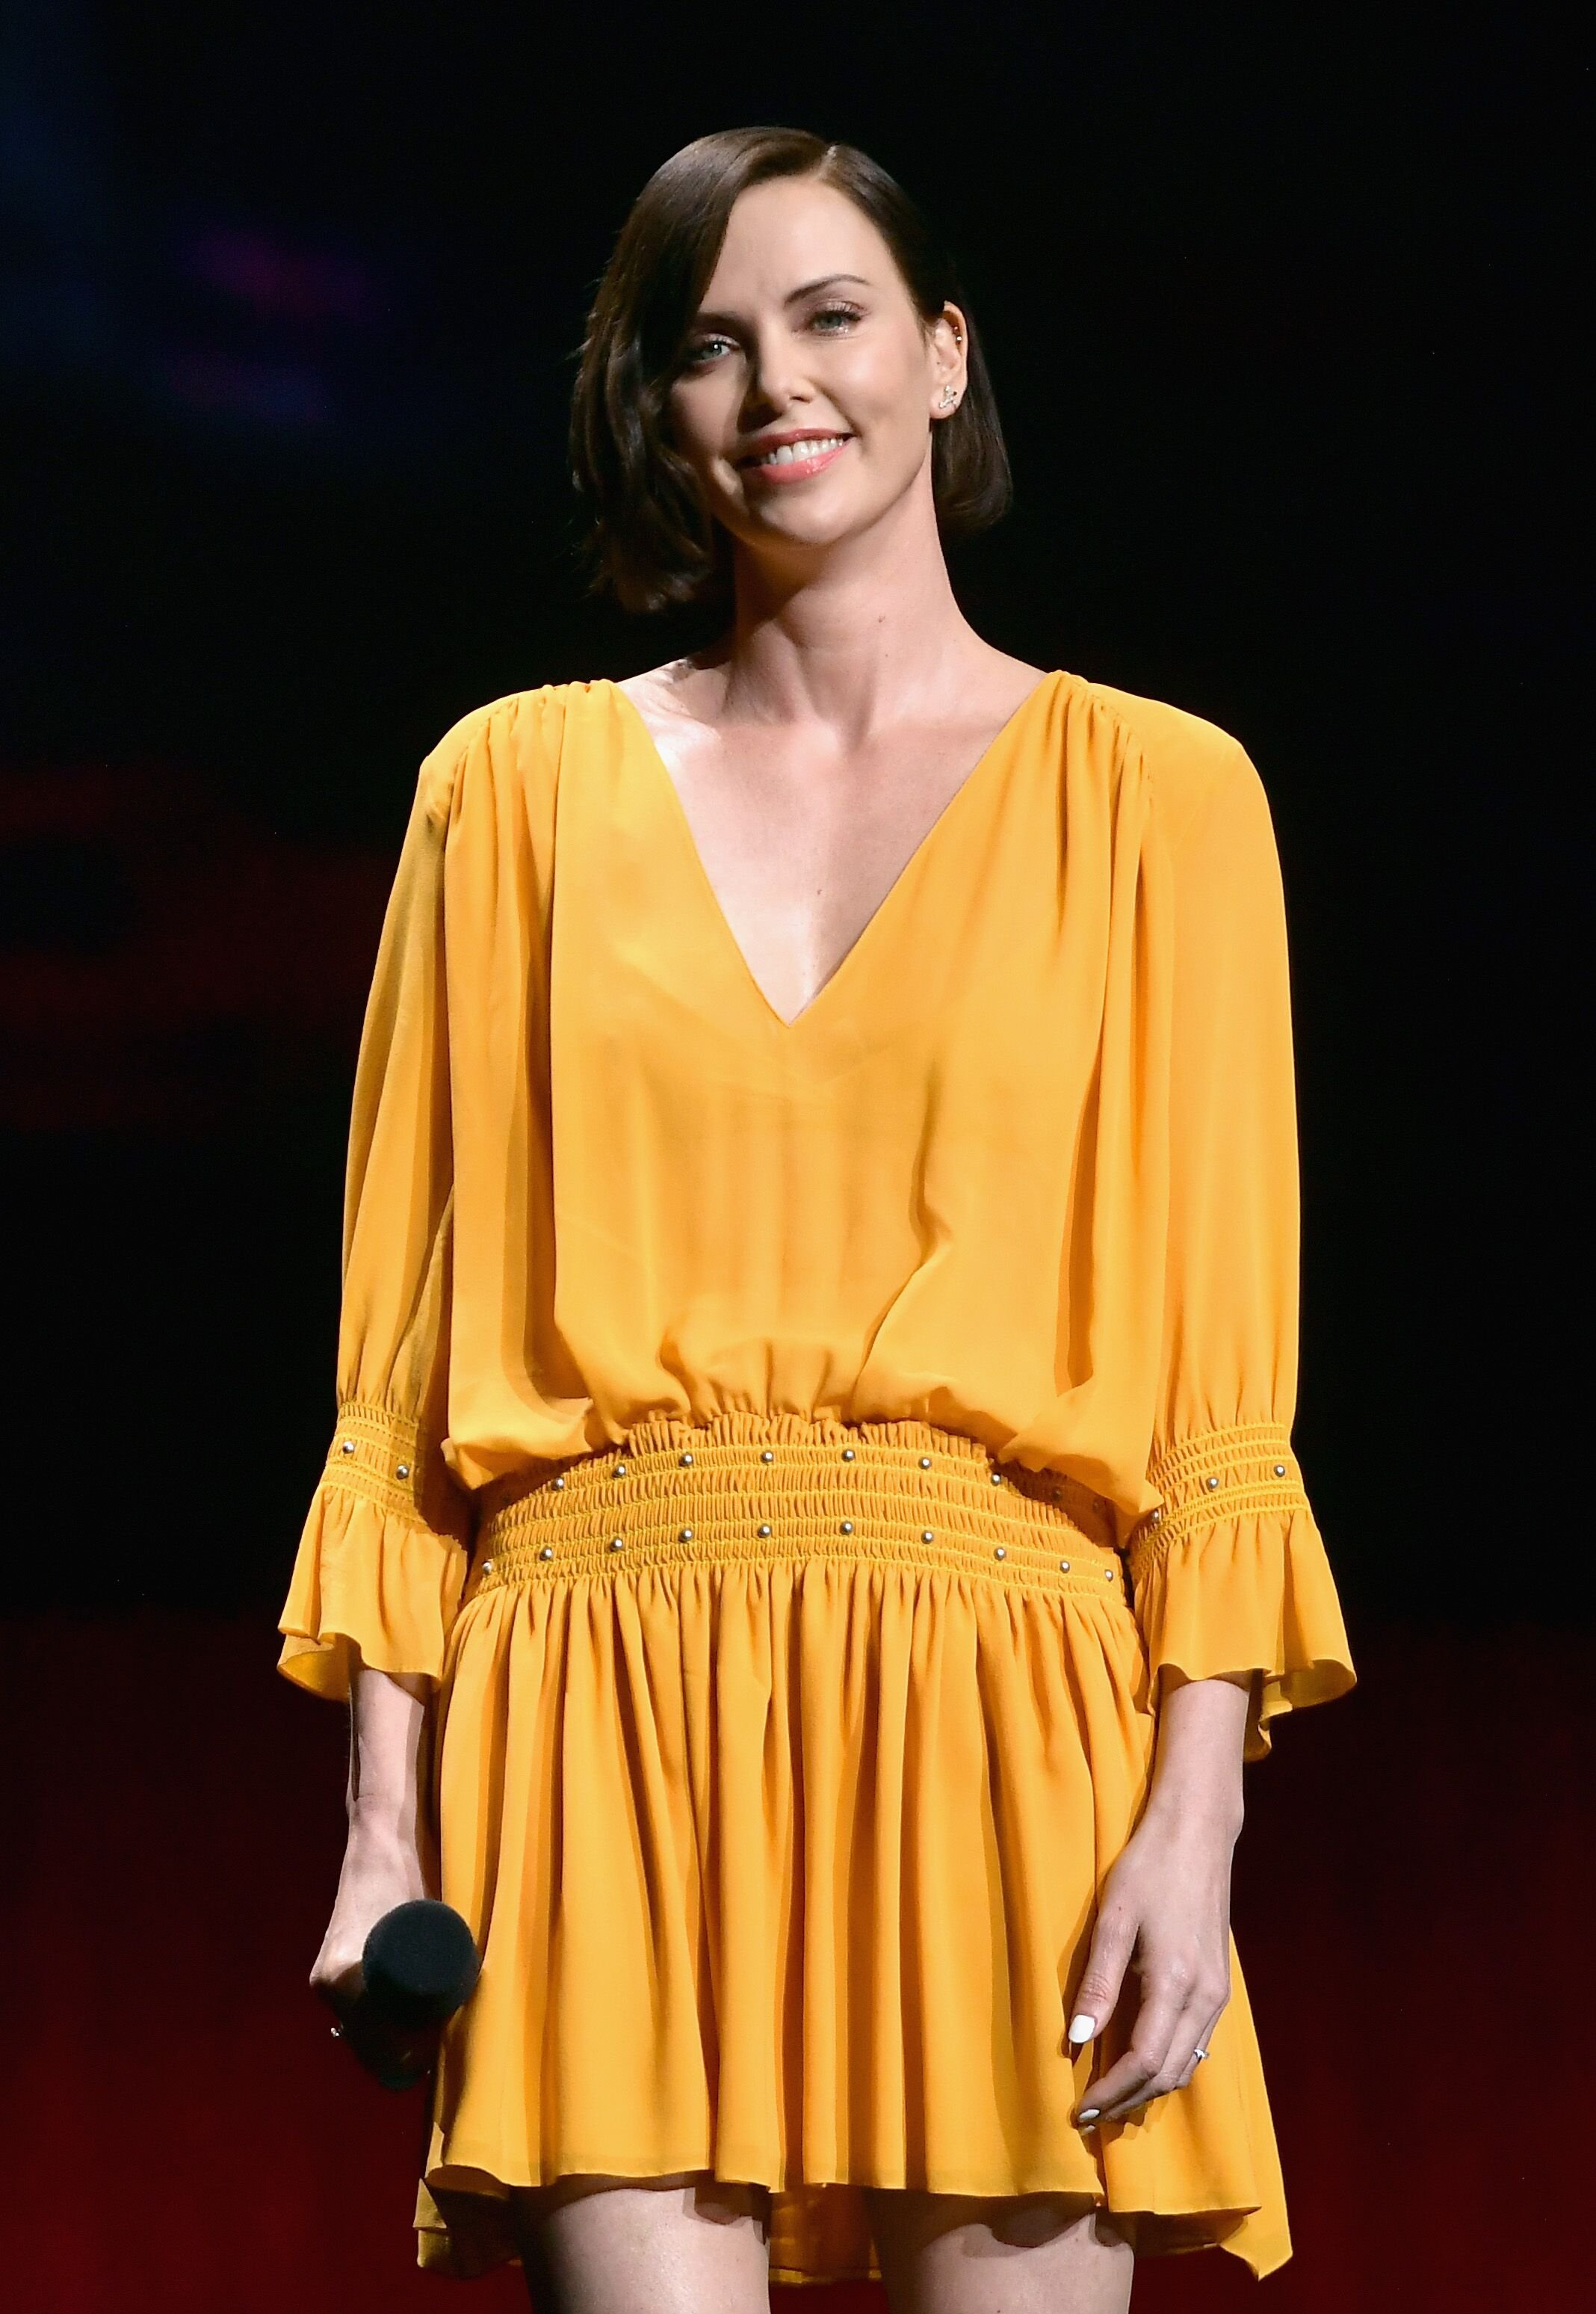 Charlize Theron speaks onstage at CinemaCon 2019. | Source: Getty Images